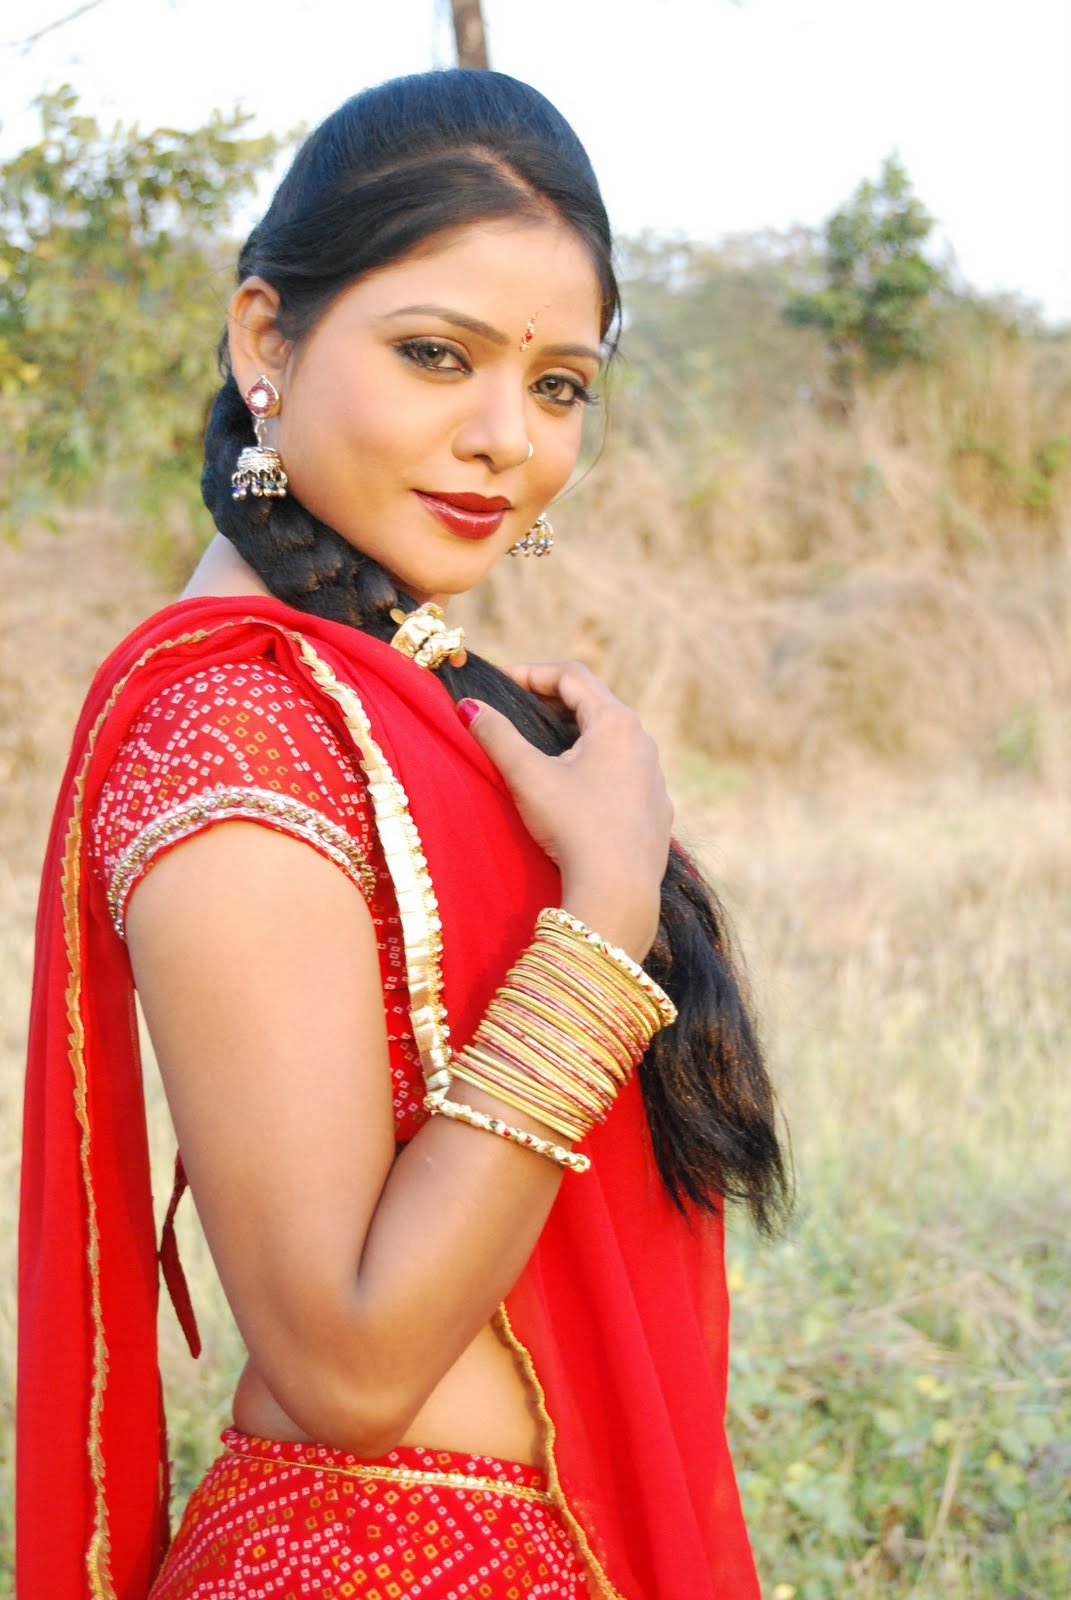 Bhojpuri Film Actress Priya Sharama wiki, Biography, Priya Sharama Latest News, Photos, wallpaper, Videos, Upcoming films Info